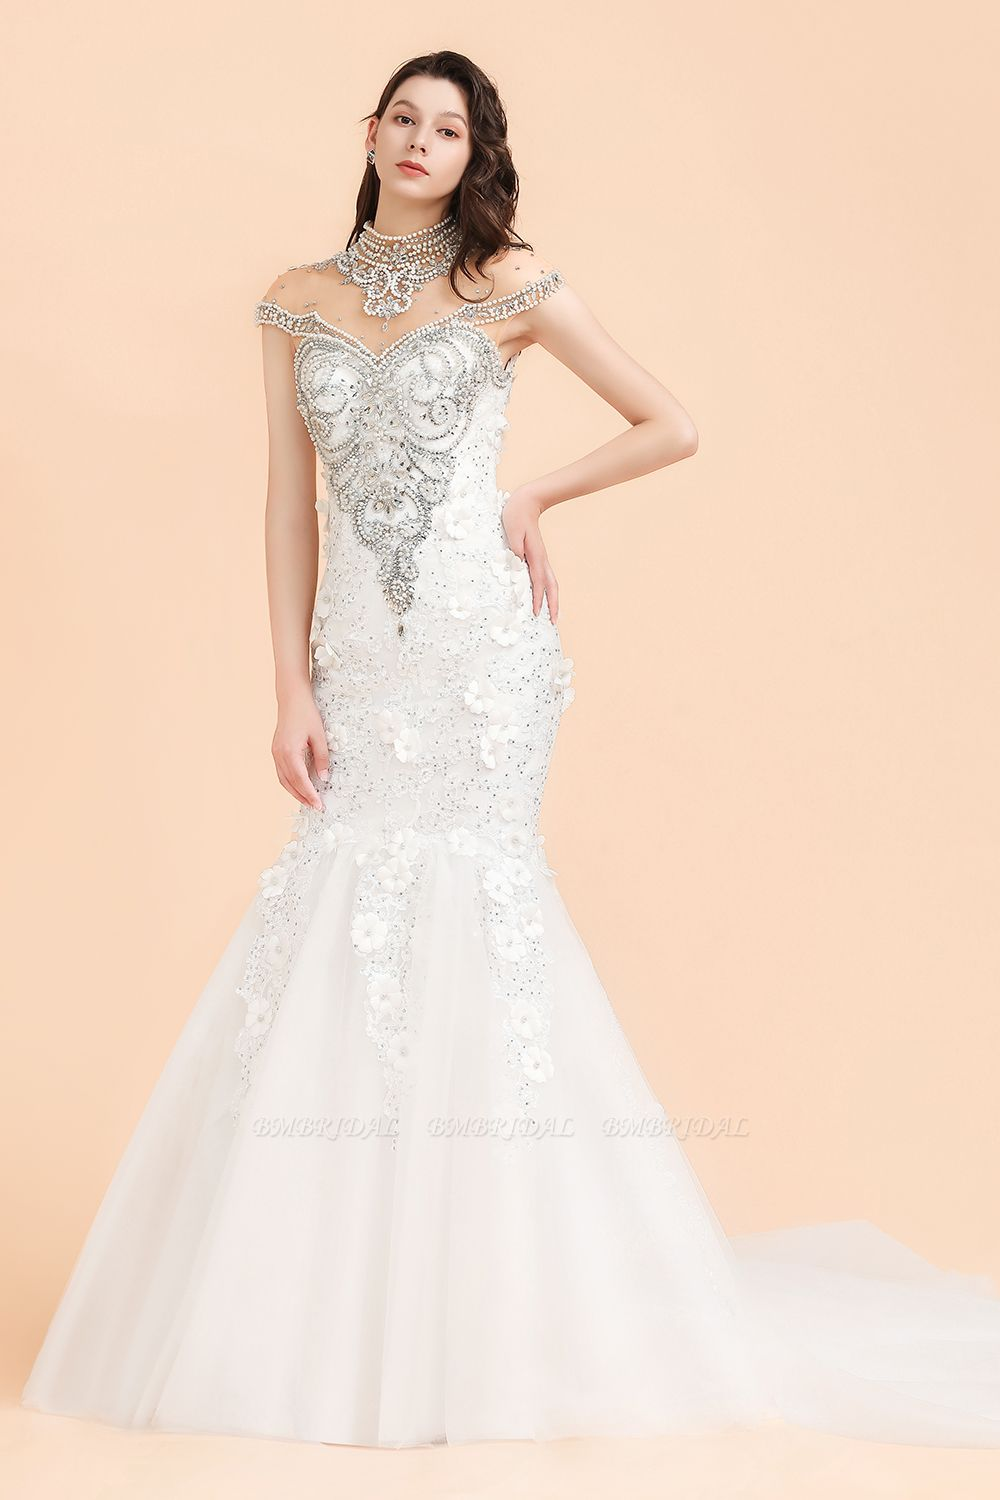 BMbridal Luxury Mermaid Wedding Dress Tulle Lace Sequins Sleeveless Bridal Gowns with Pearls